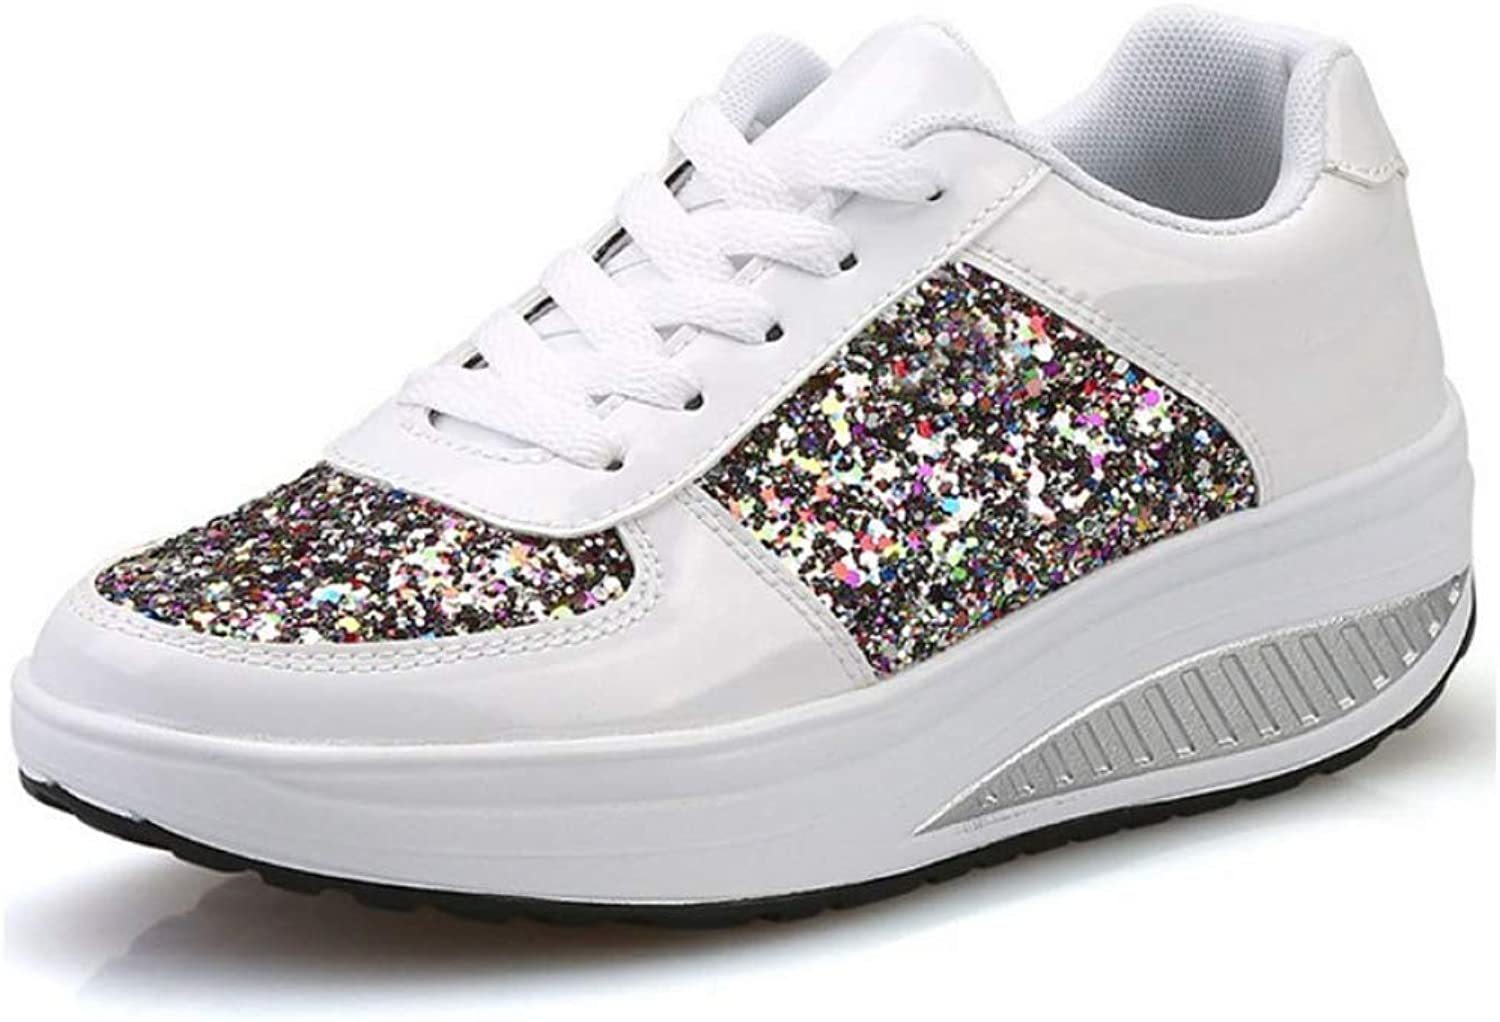 U-MAC Womens Wedge Sneaker Lace Up Round Toe Rocking shoes Platform Sequins Light Weight Slip On Walking shoes